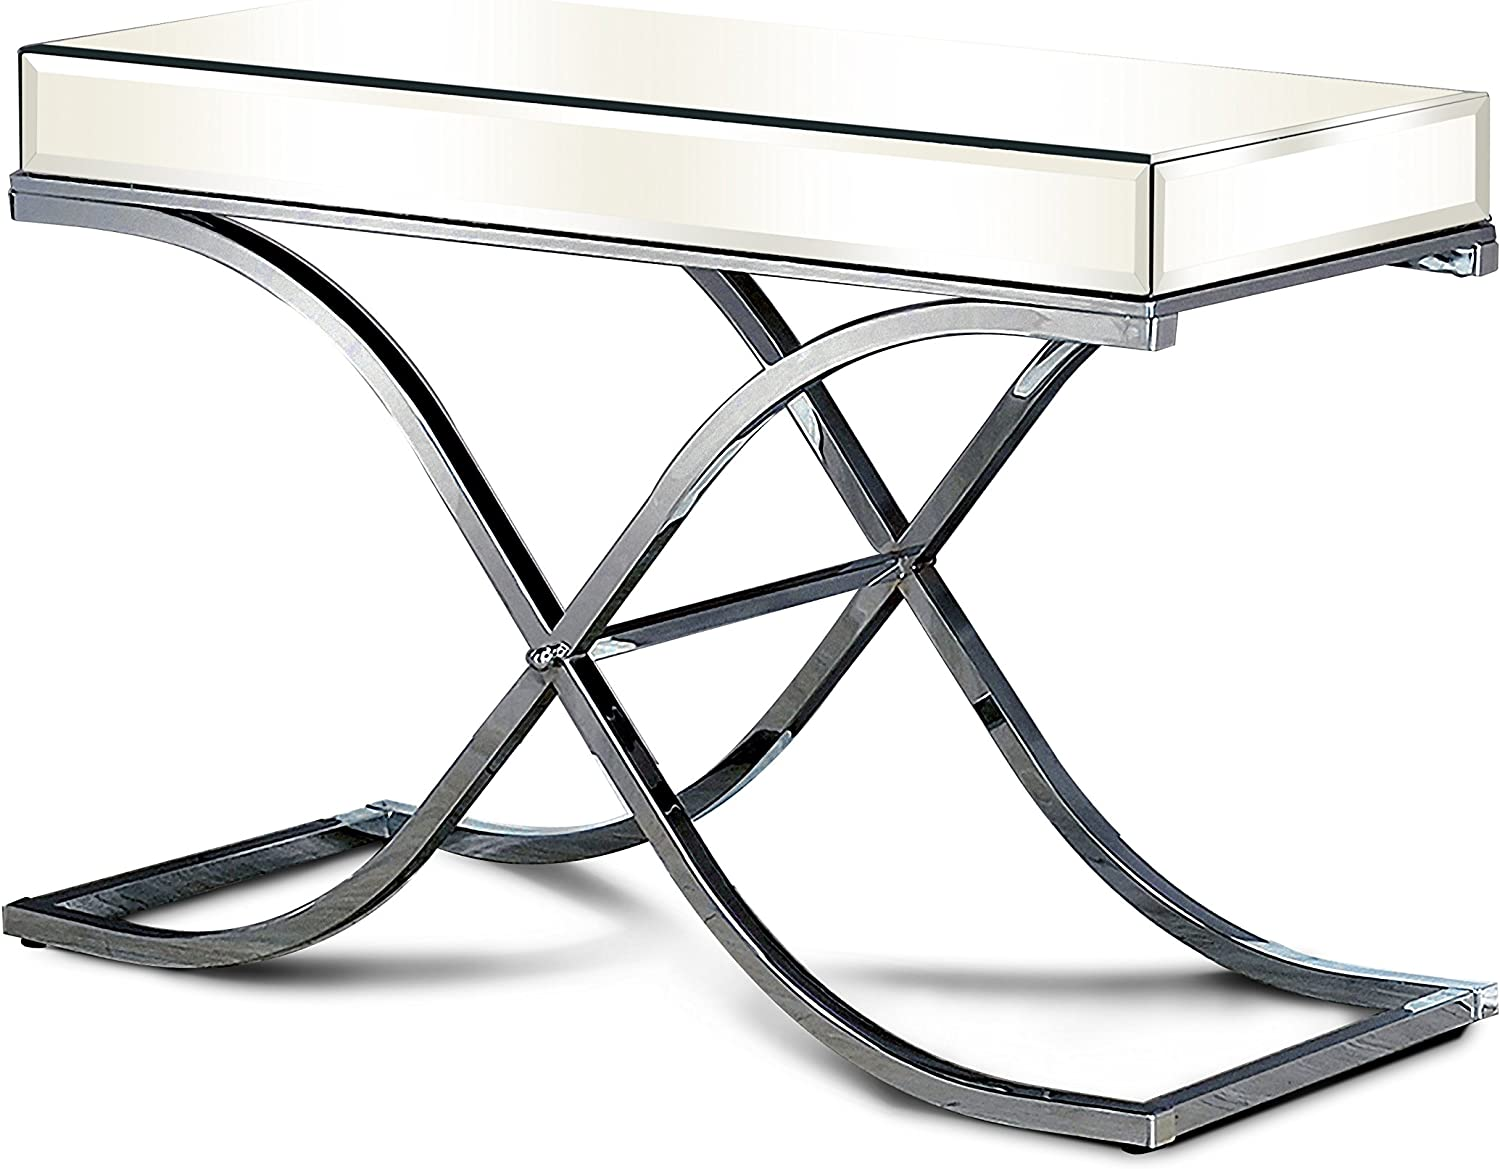 Furniture of America Luxy Mirror Panel Side Table, Chrome